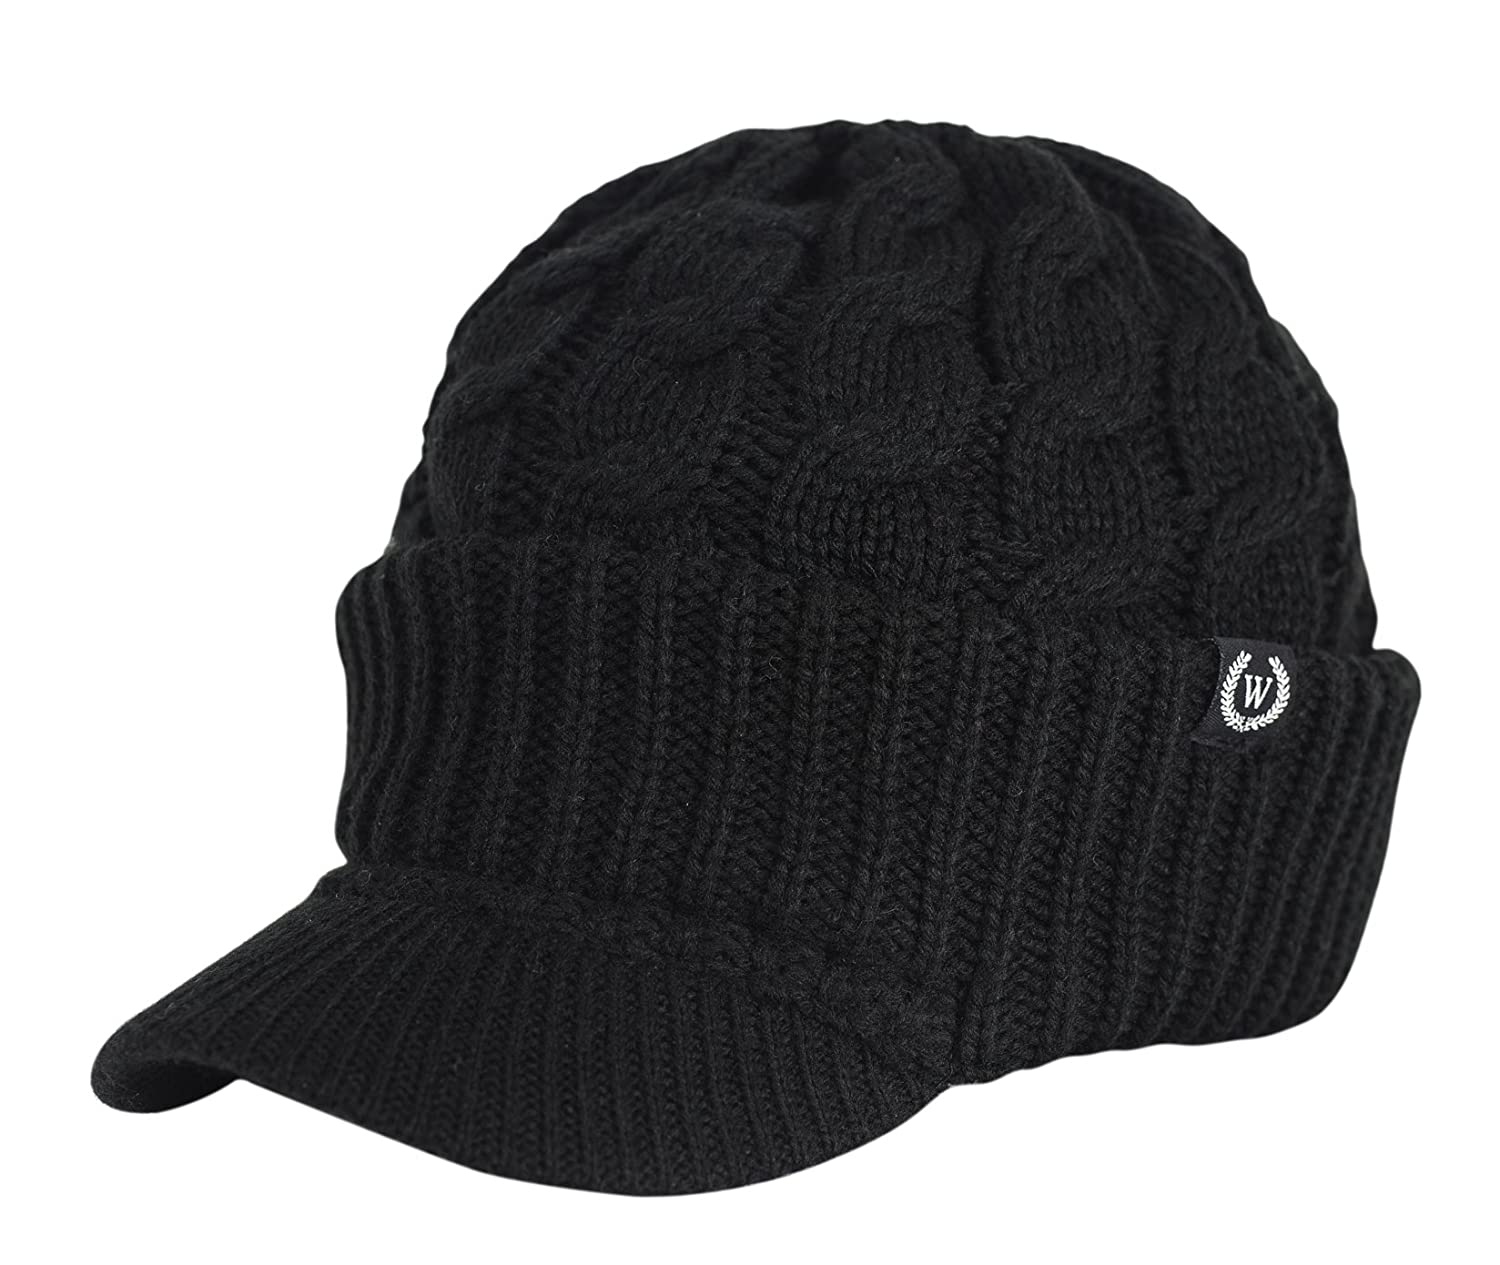 Newsboy Cable Knitted Hat with Visor Bill Winter Warm Hat for Women in Black, Charcoal, Dark Brown, Hot Pink, Red, White